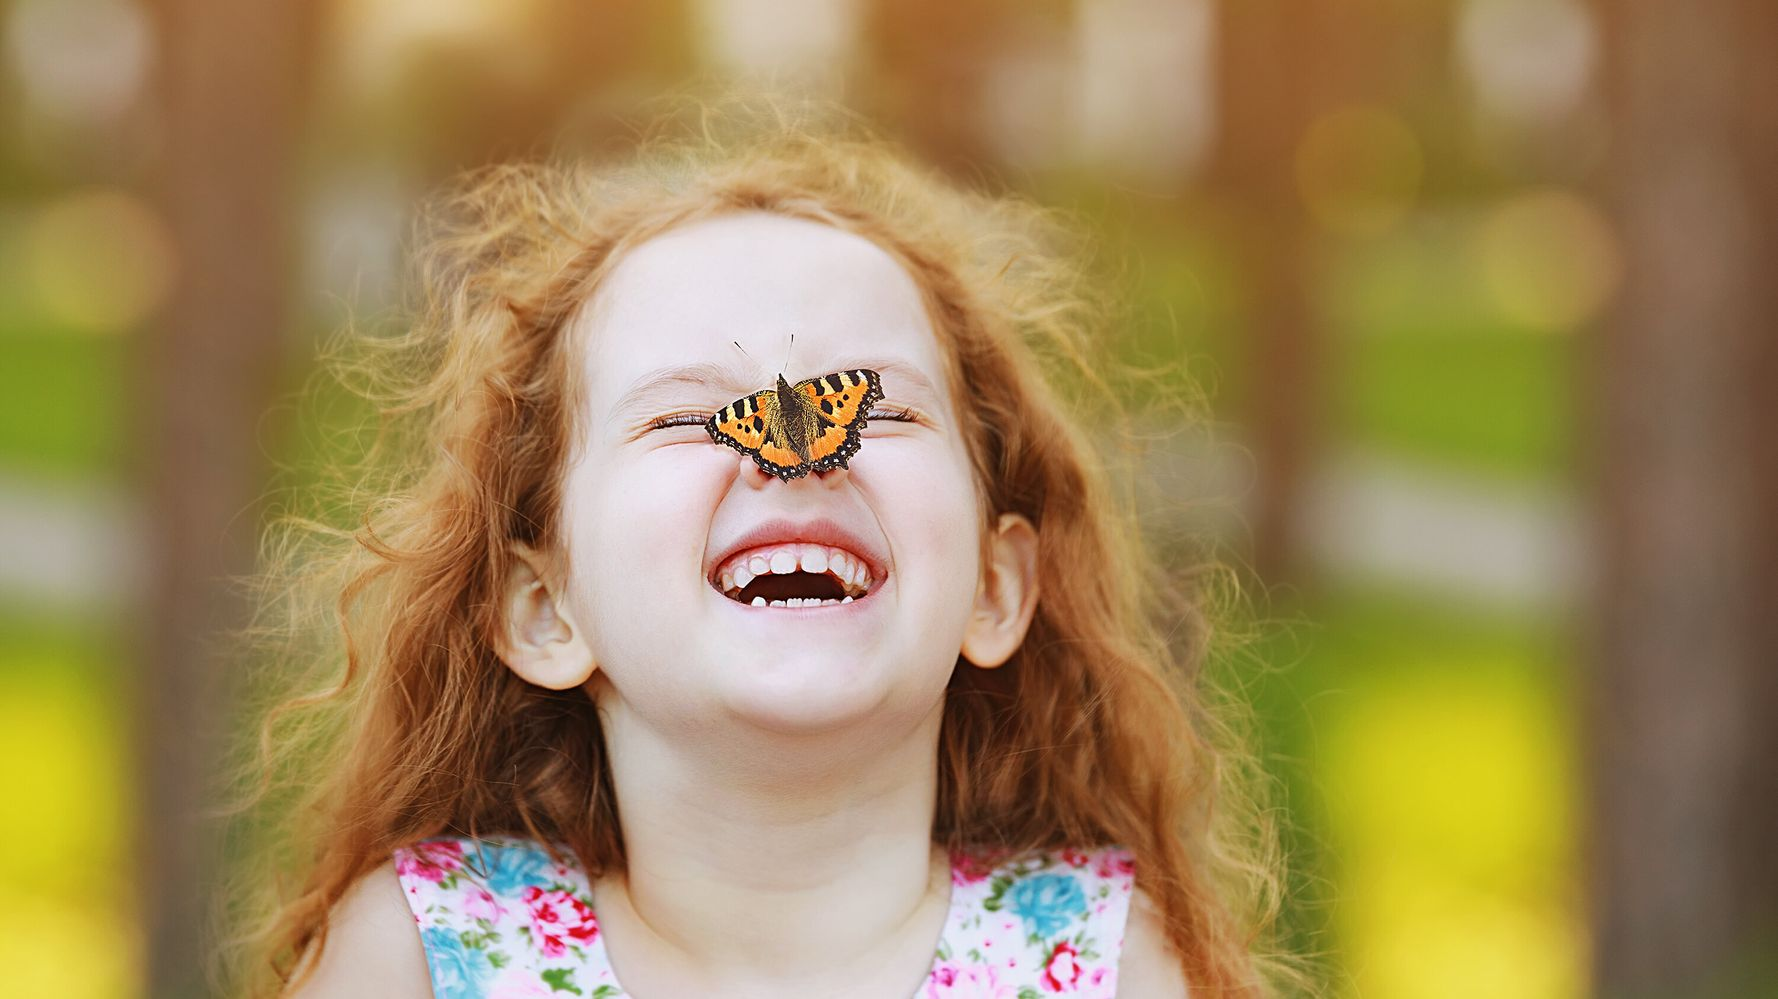 Belightful Design addresses the declining number of butterflies in Europe by offering them an eco-friendly feeder.